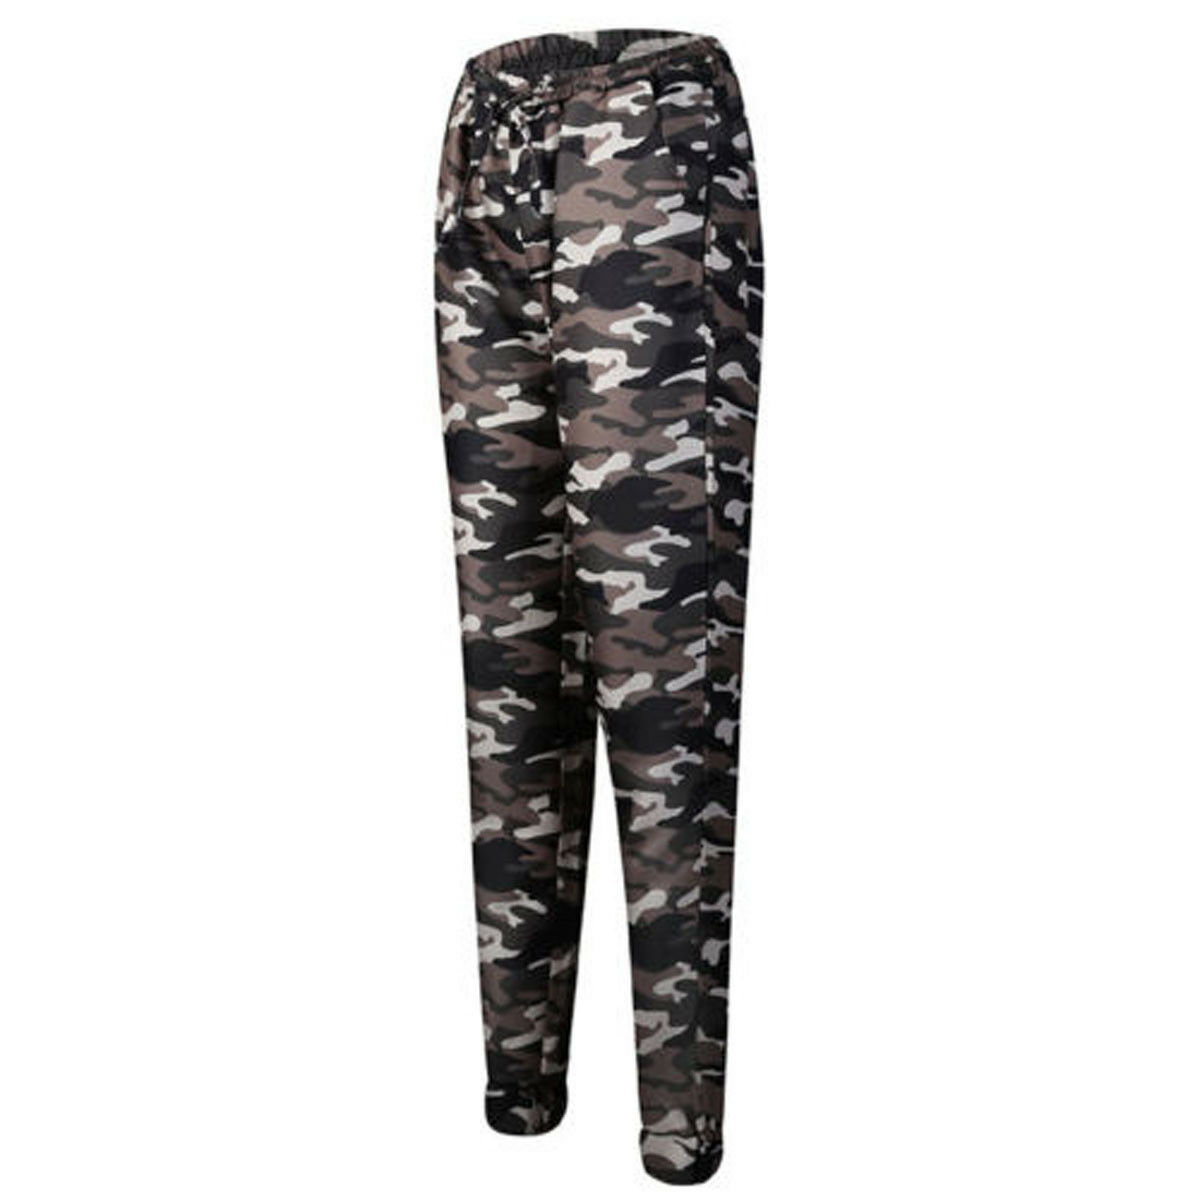 1pc Autumn Outdoor Camping Womens Camo Trousers Casual Hip-hop Military Army Combat Camouflage Pants S-2XL Plus size pants hot 21